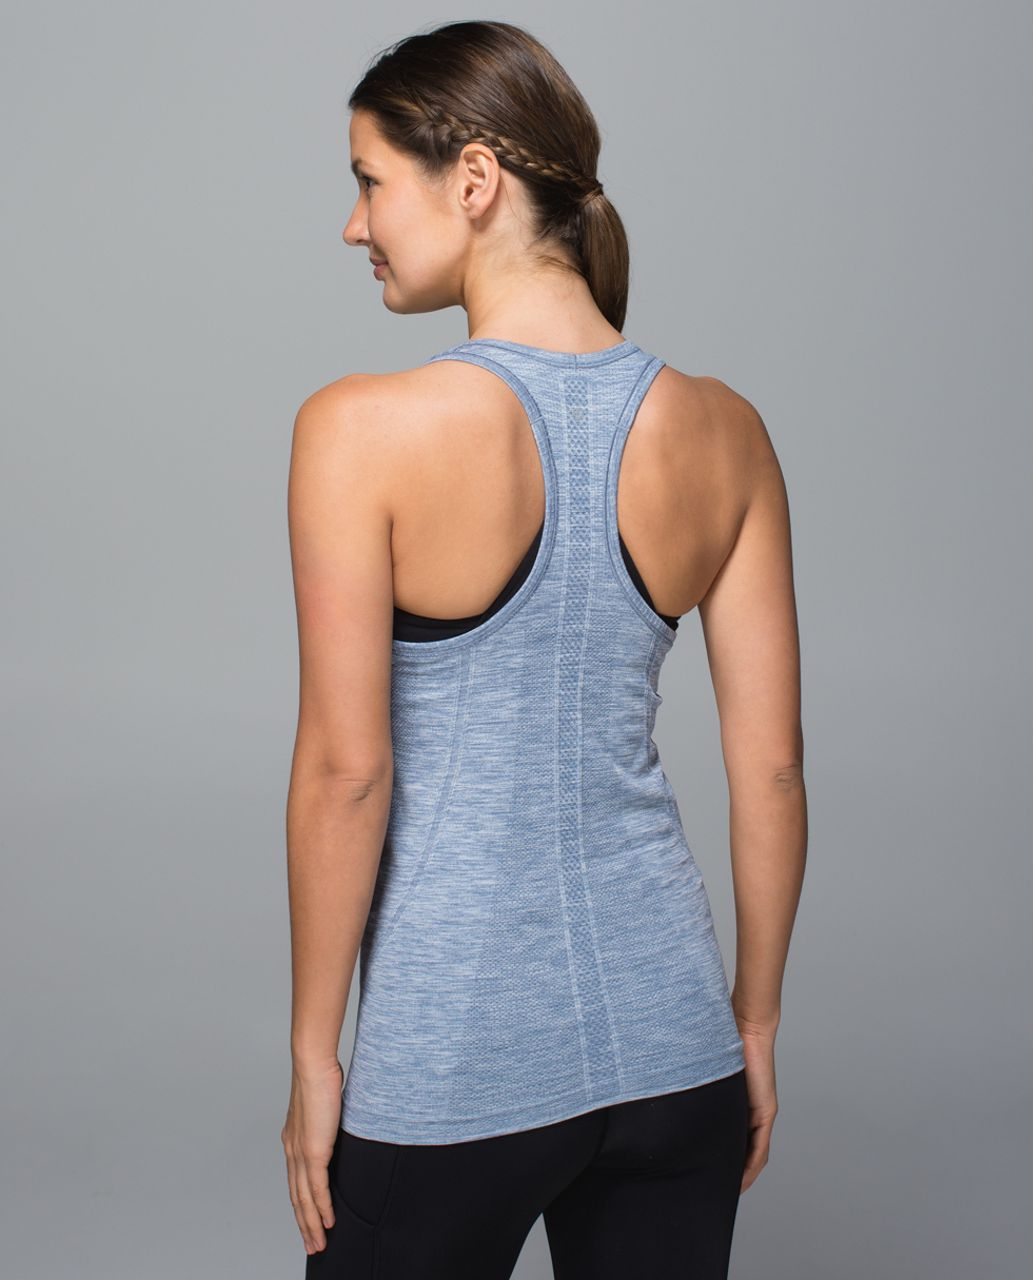 Lululemon Swiftly Tech Racerback - Heathered Blue Denim (First Release)